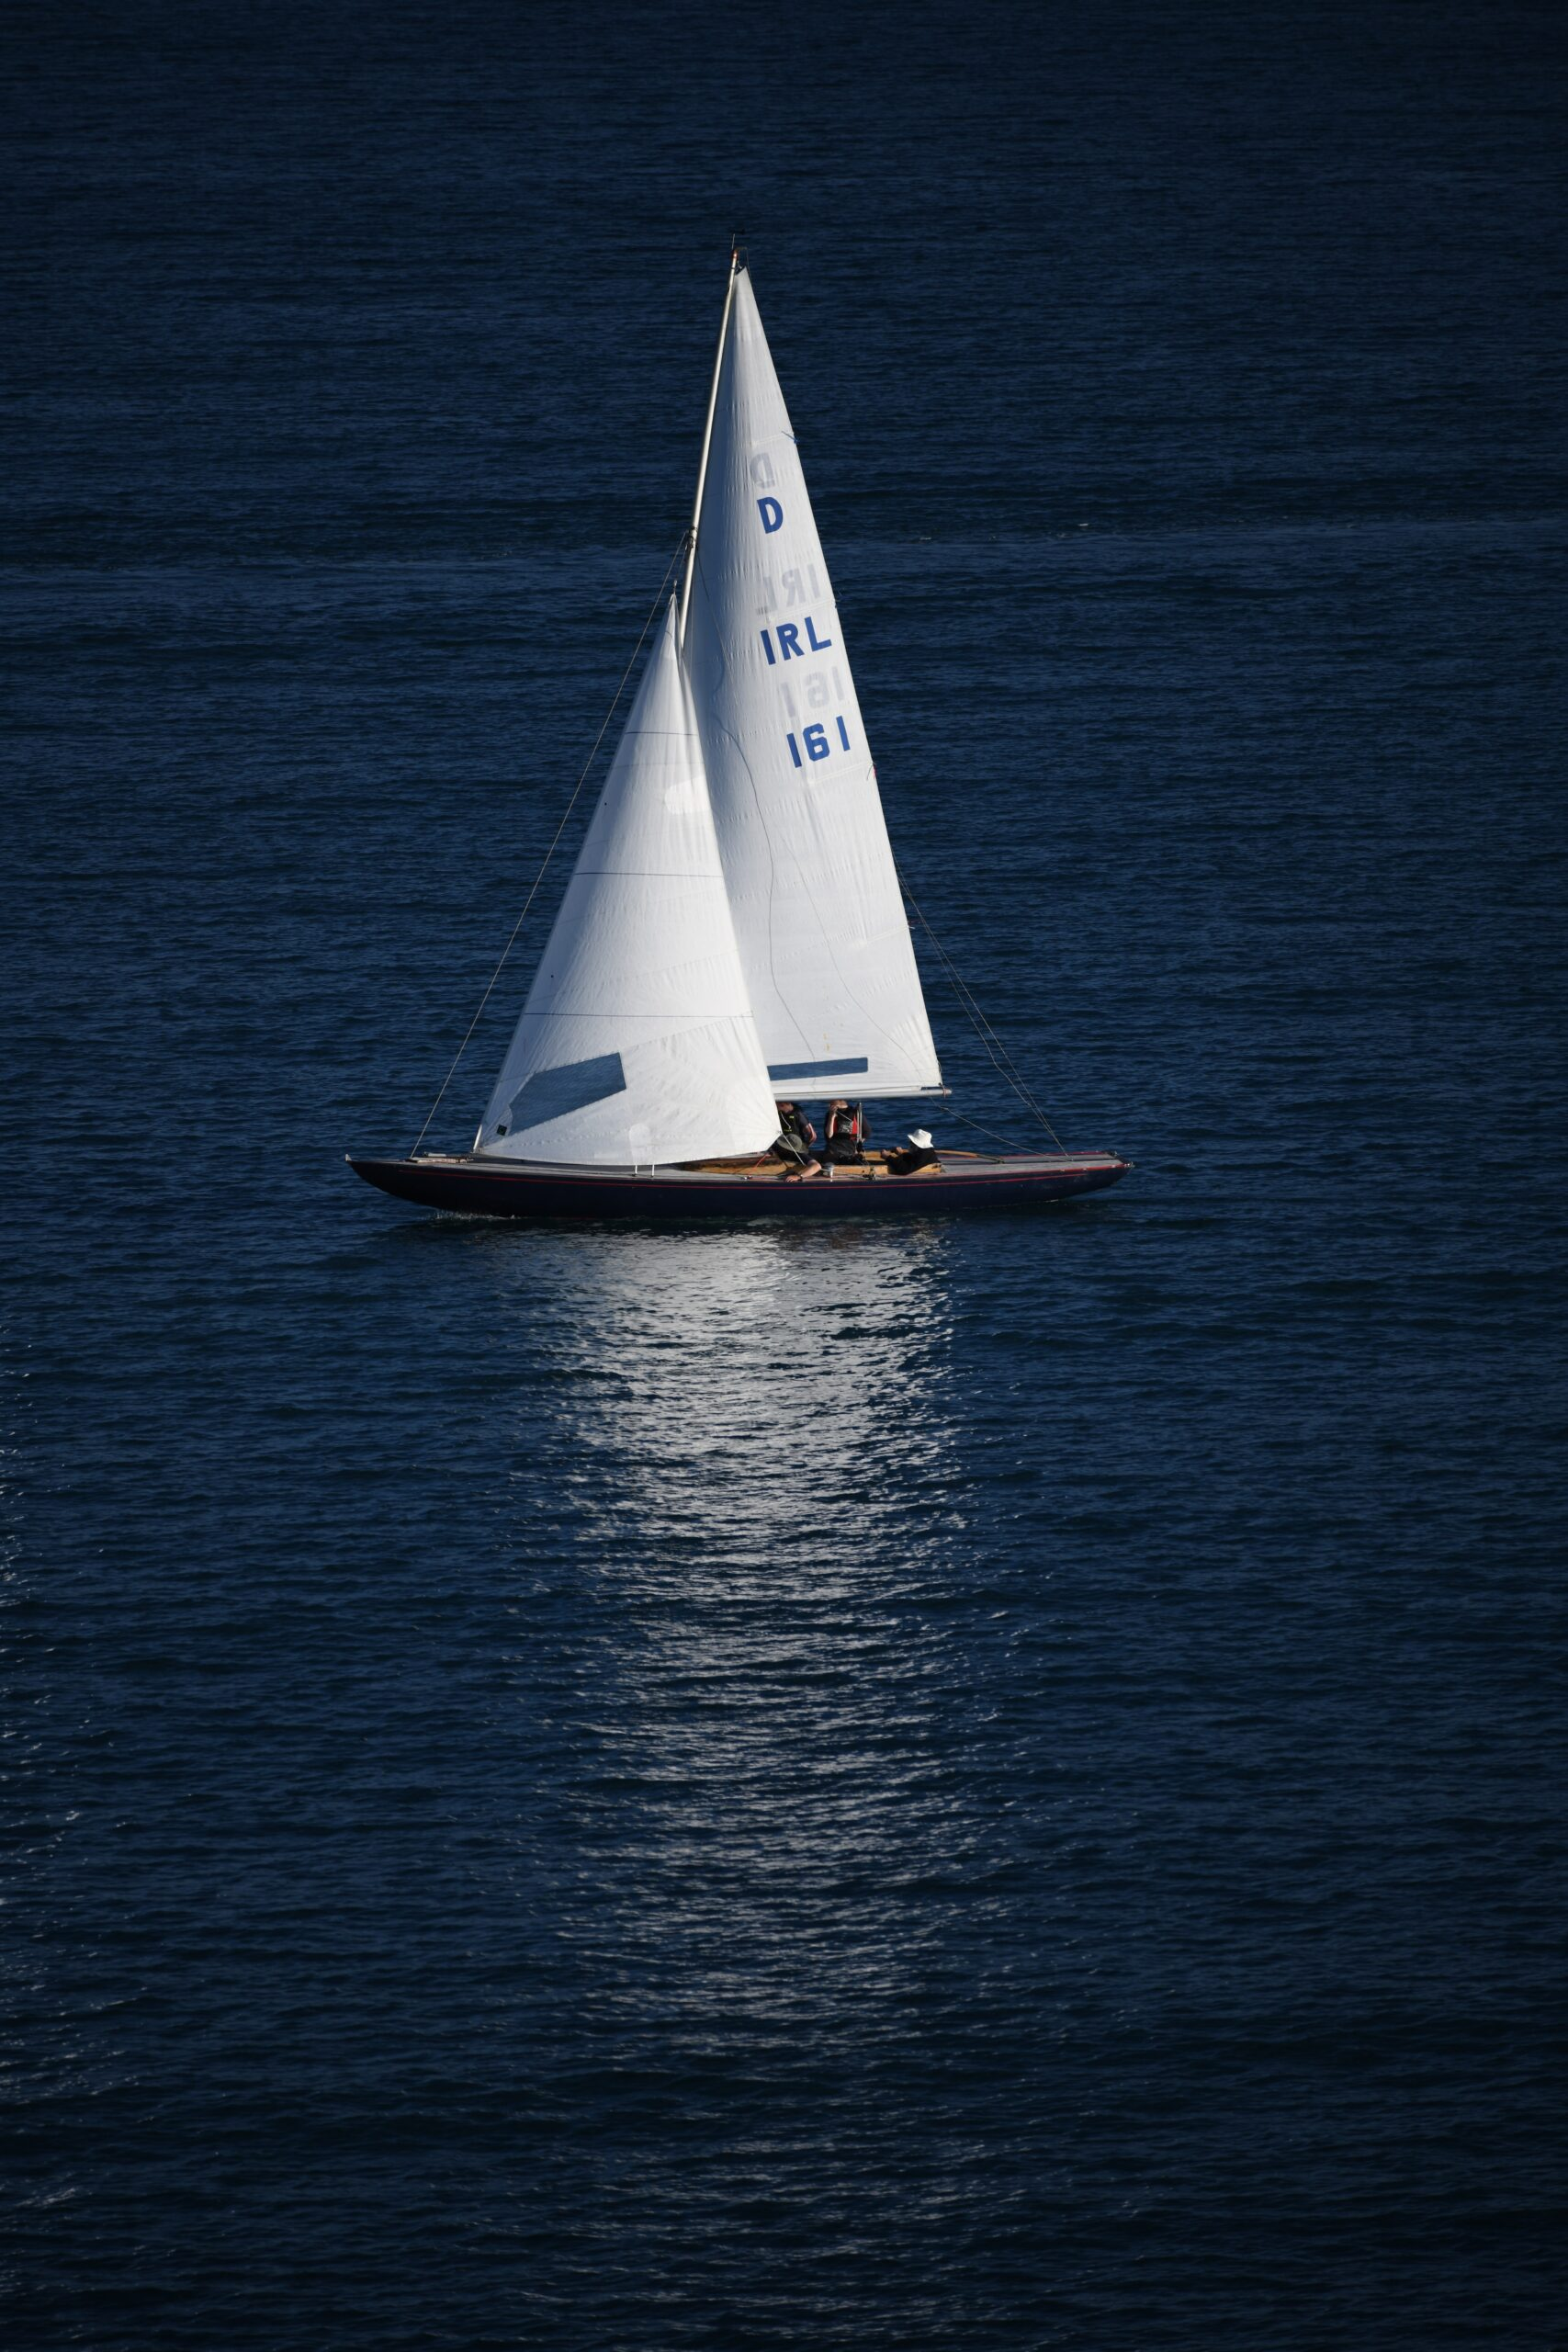 photo-of-sailboat-on-ocean-2407490